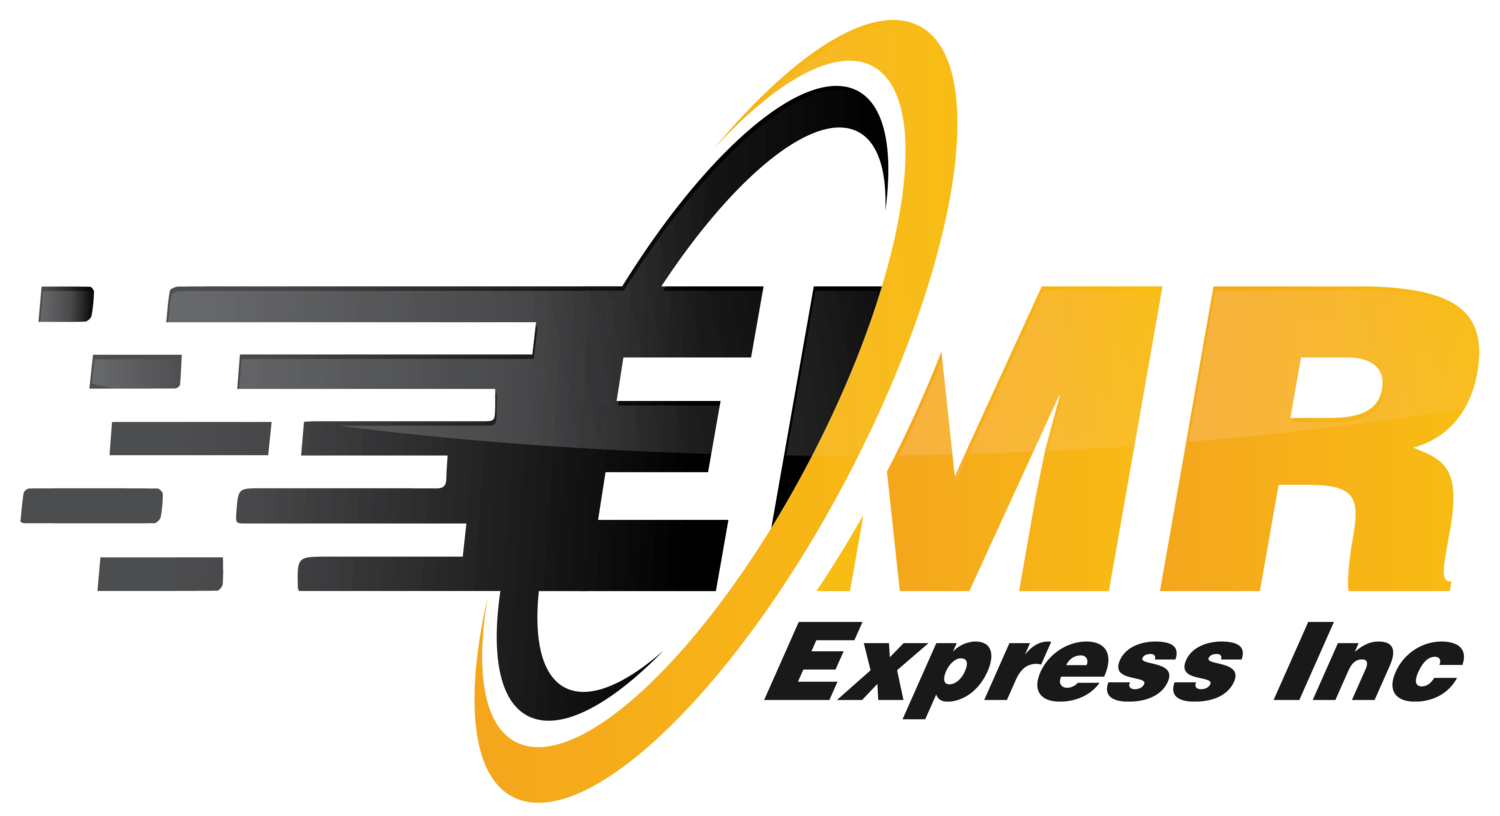 Emr Express, Inc.